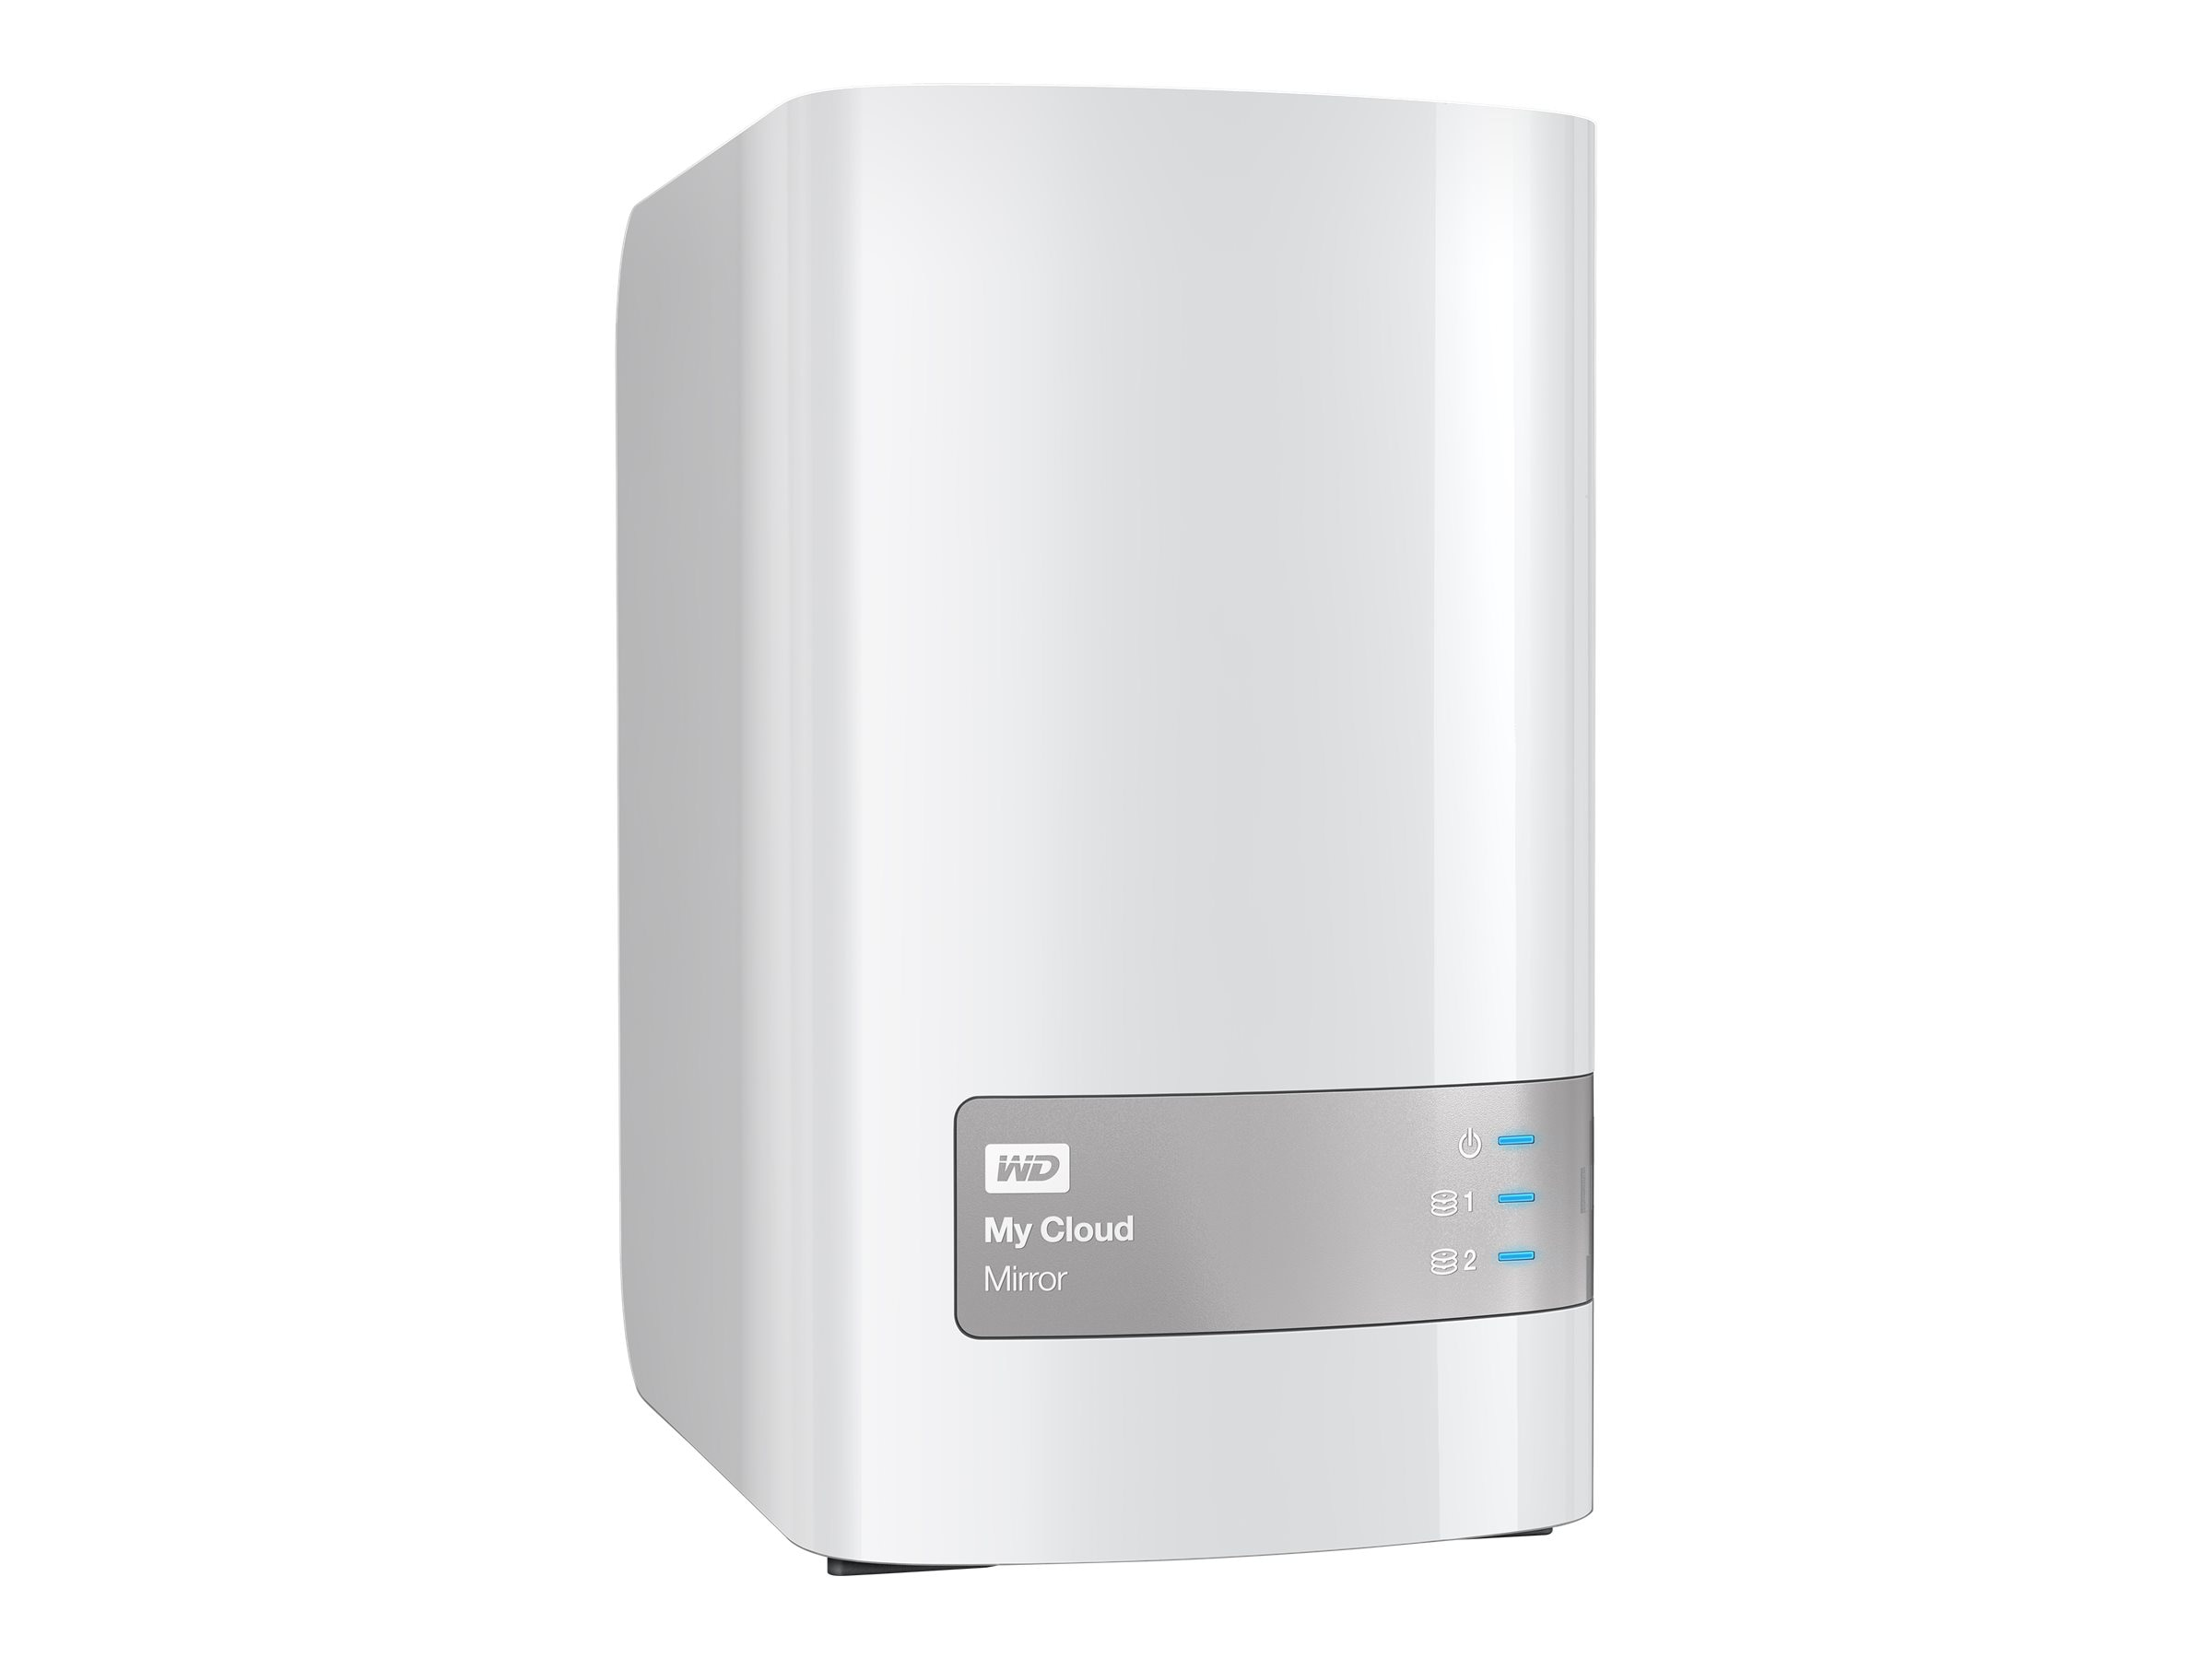 WD 4TB My Cloud Mirror (Gen 2) Personal Cloud Storage, WDBWVZ0040JWT-NESN